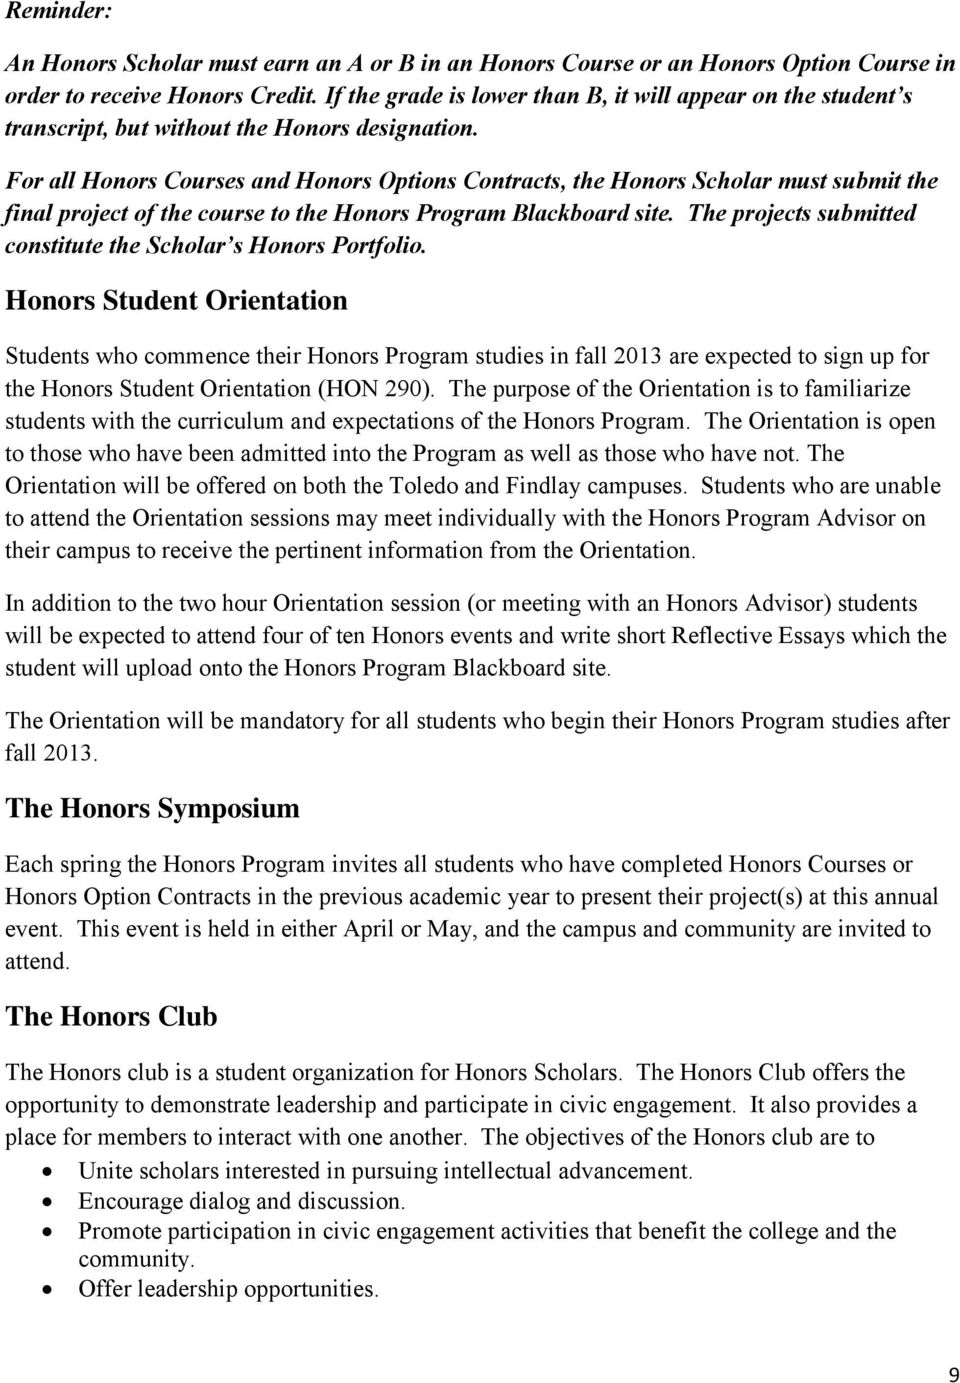 For all Honors Courses and Honors Options Contracts, the Honors Scholar must submit the final project of the course to the Honors Program Blackboard site.